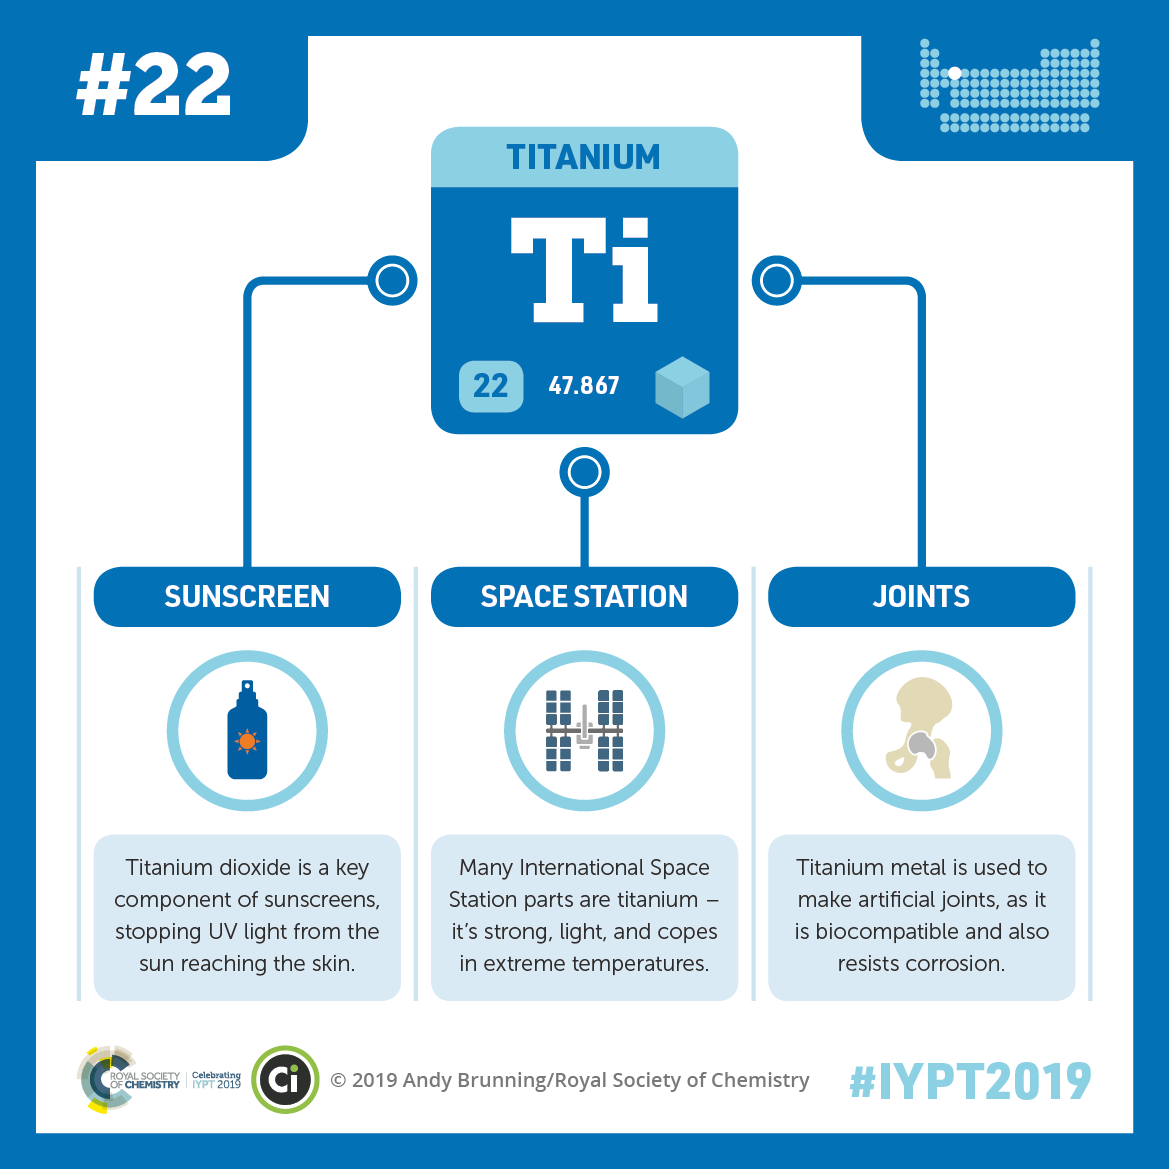 IYPT 2019 Elements 022: Titanium: Sunscreens and space stations